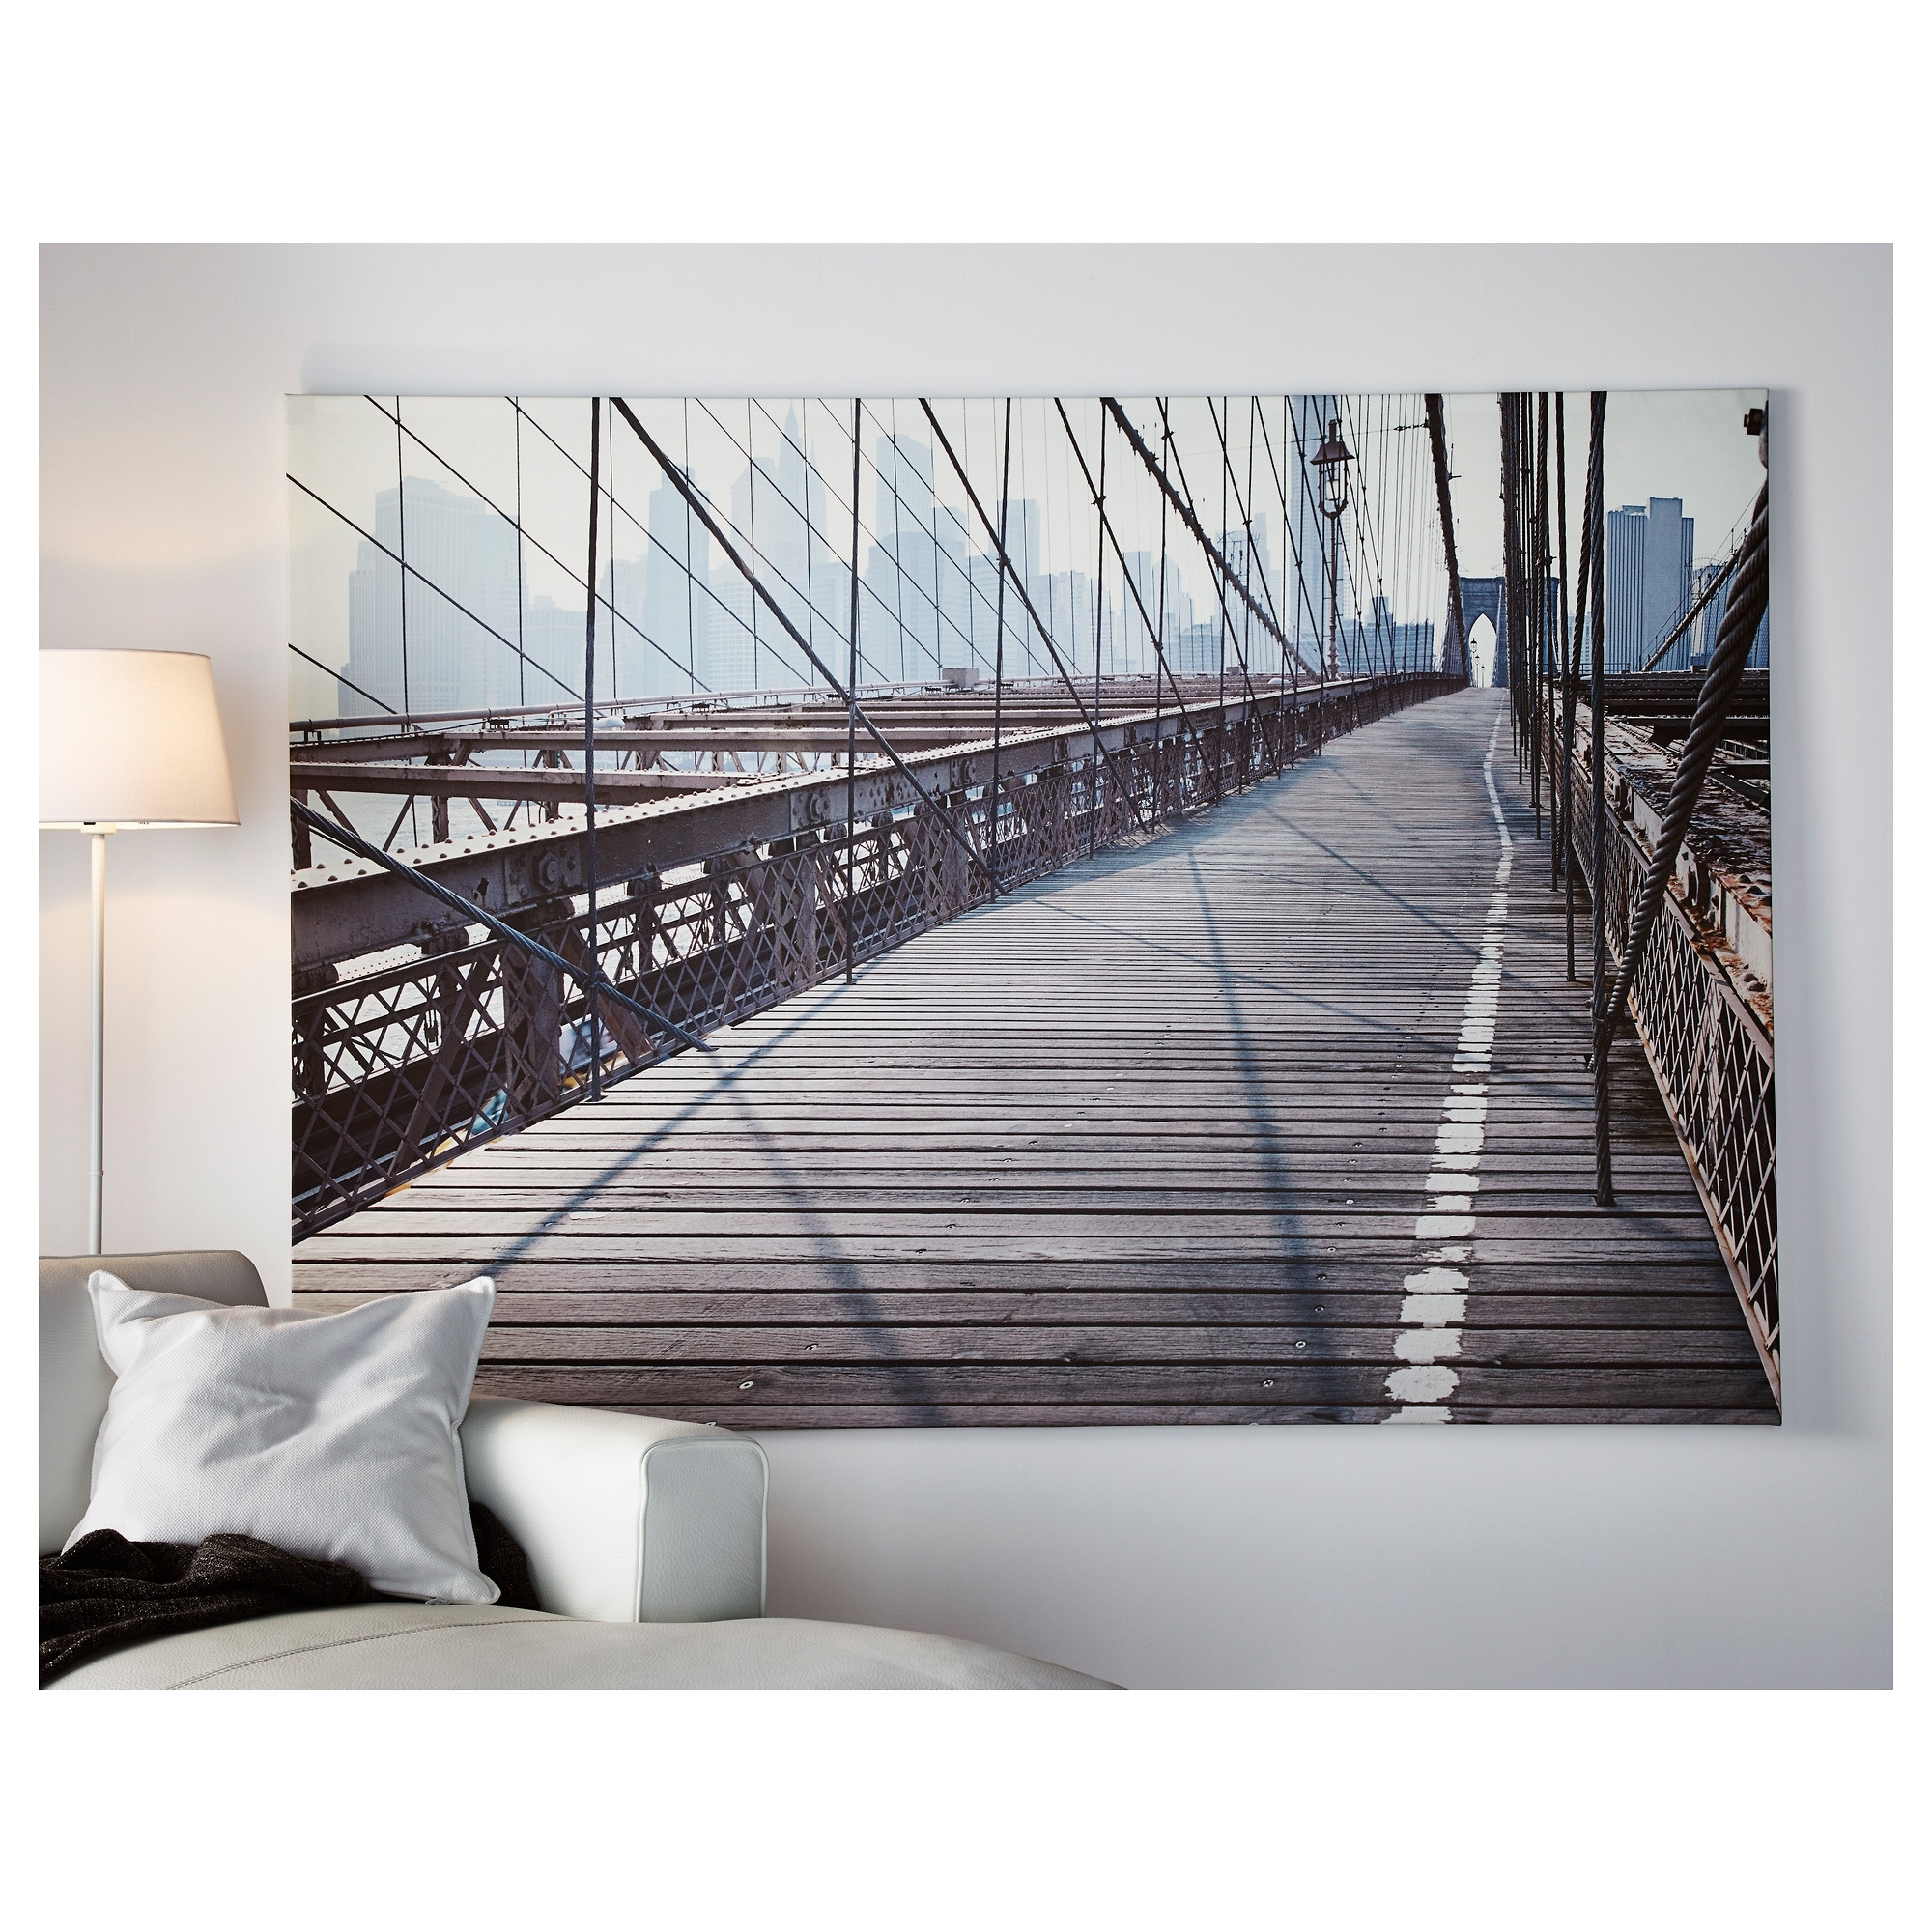 40 Super Design Ideas Ikea Wall Art Canvas | Panfan Site For Best And Newest Ikea Canvas Wall Art (Gallery 10 of 15)